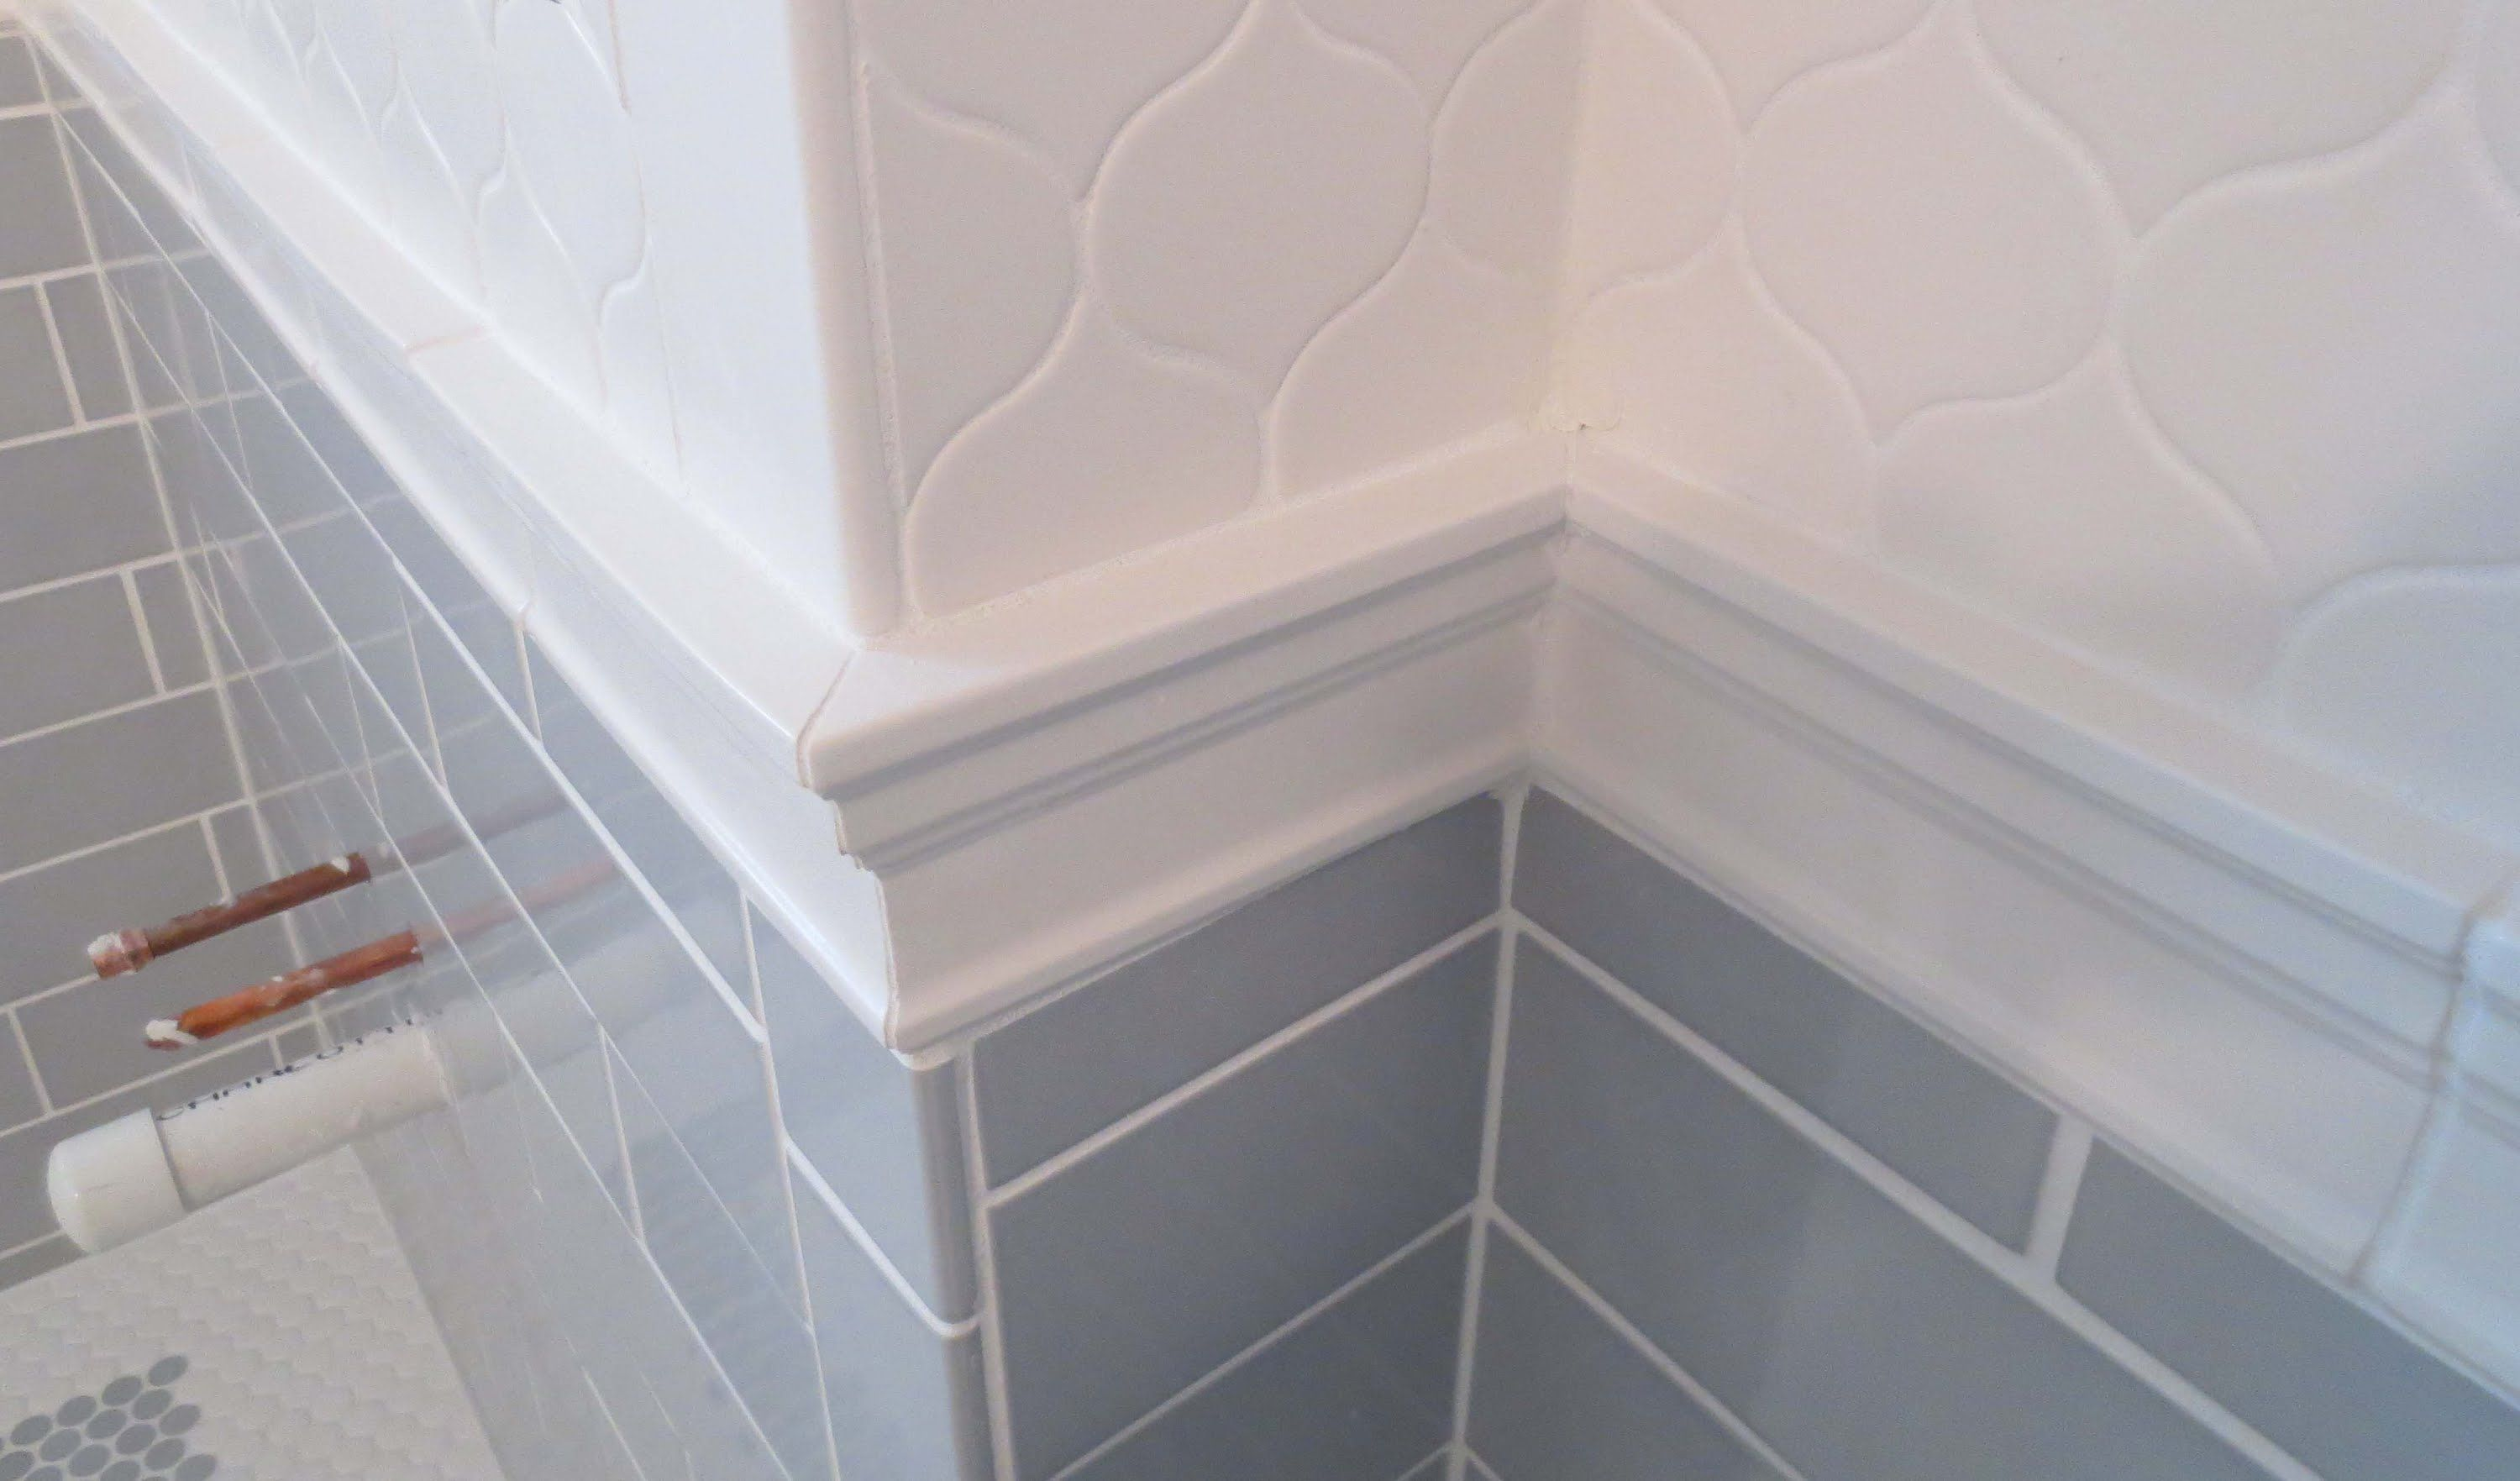 Complete Bathroom Schluter Systems Products Part 5 Installing Cornice Molding Or Chair Rail Bathroom Wall Tile Tile Bathroom Floor Molding